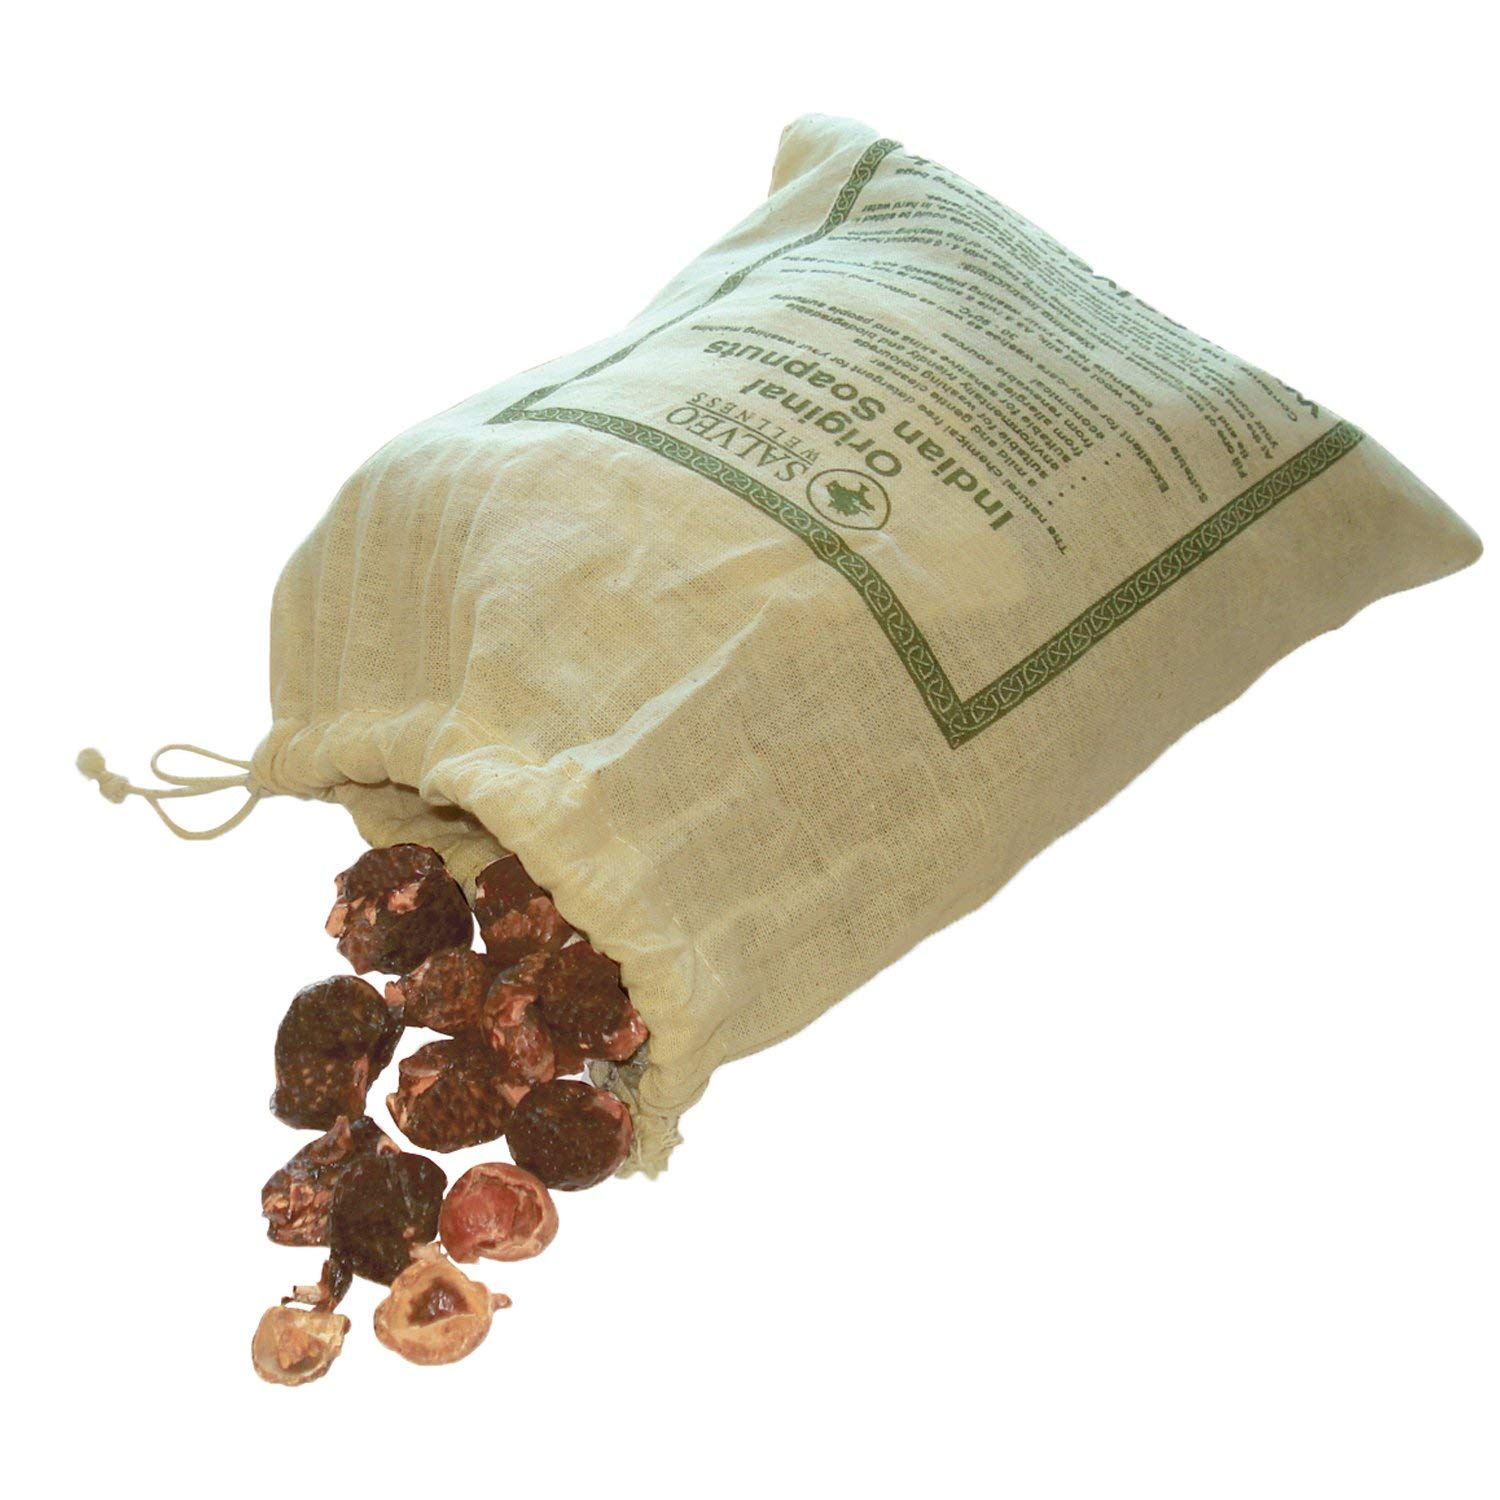 Salveo Natural Indian Soap Nuts 1Kg – Eco-Friendly Laundry Detergent